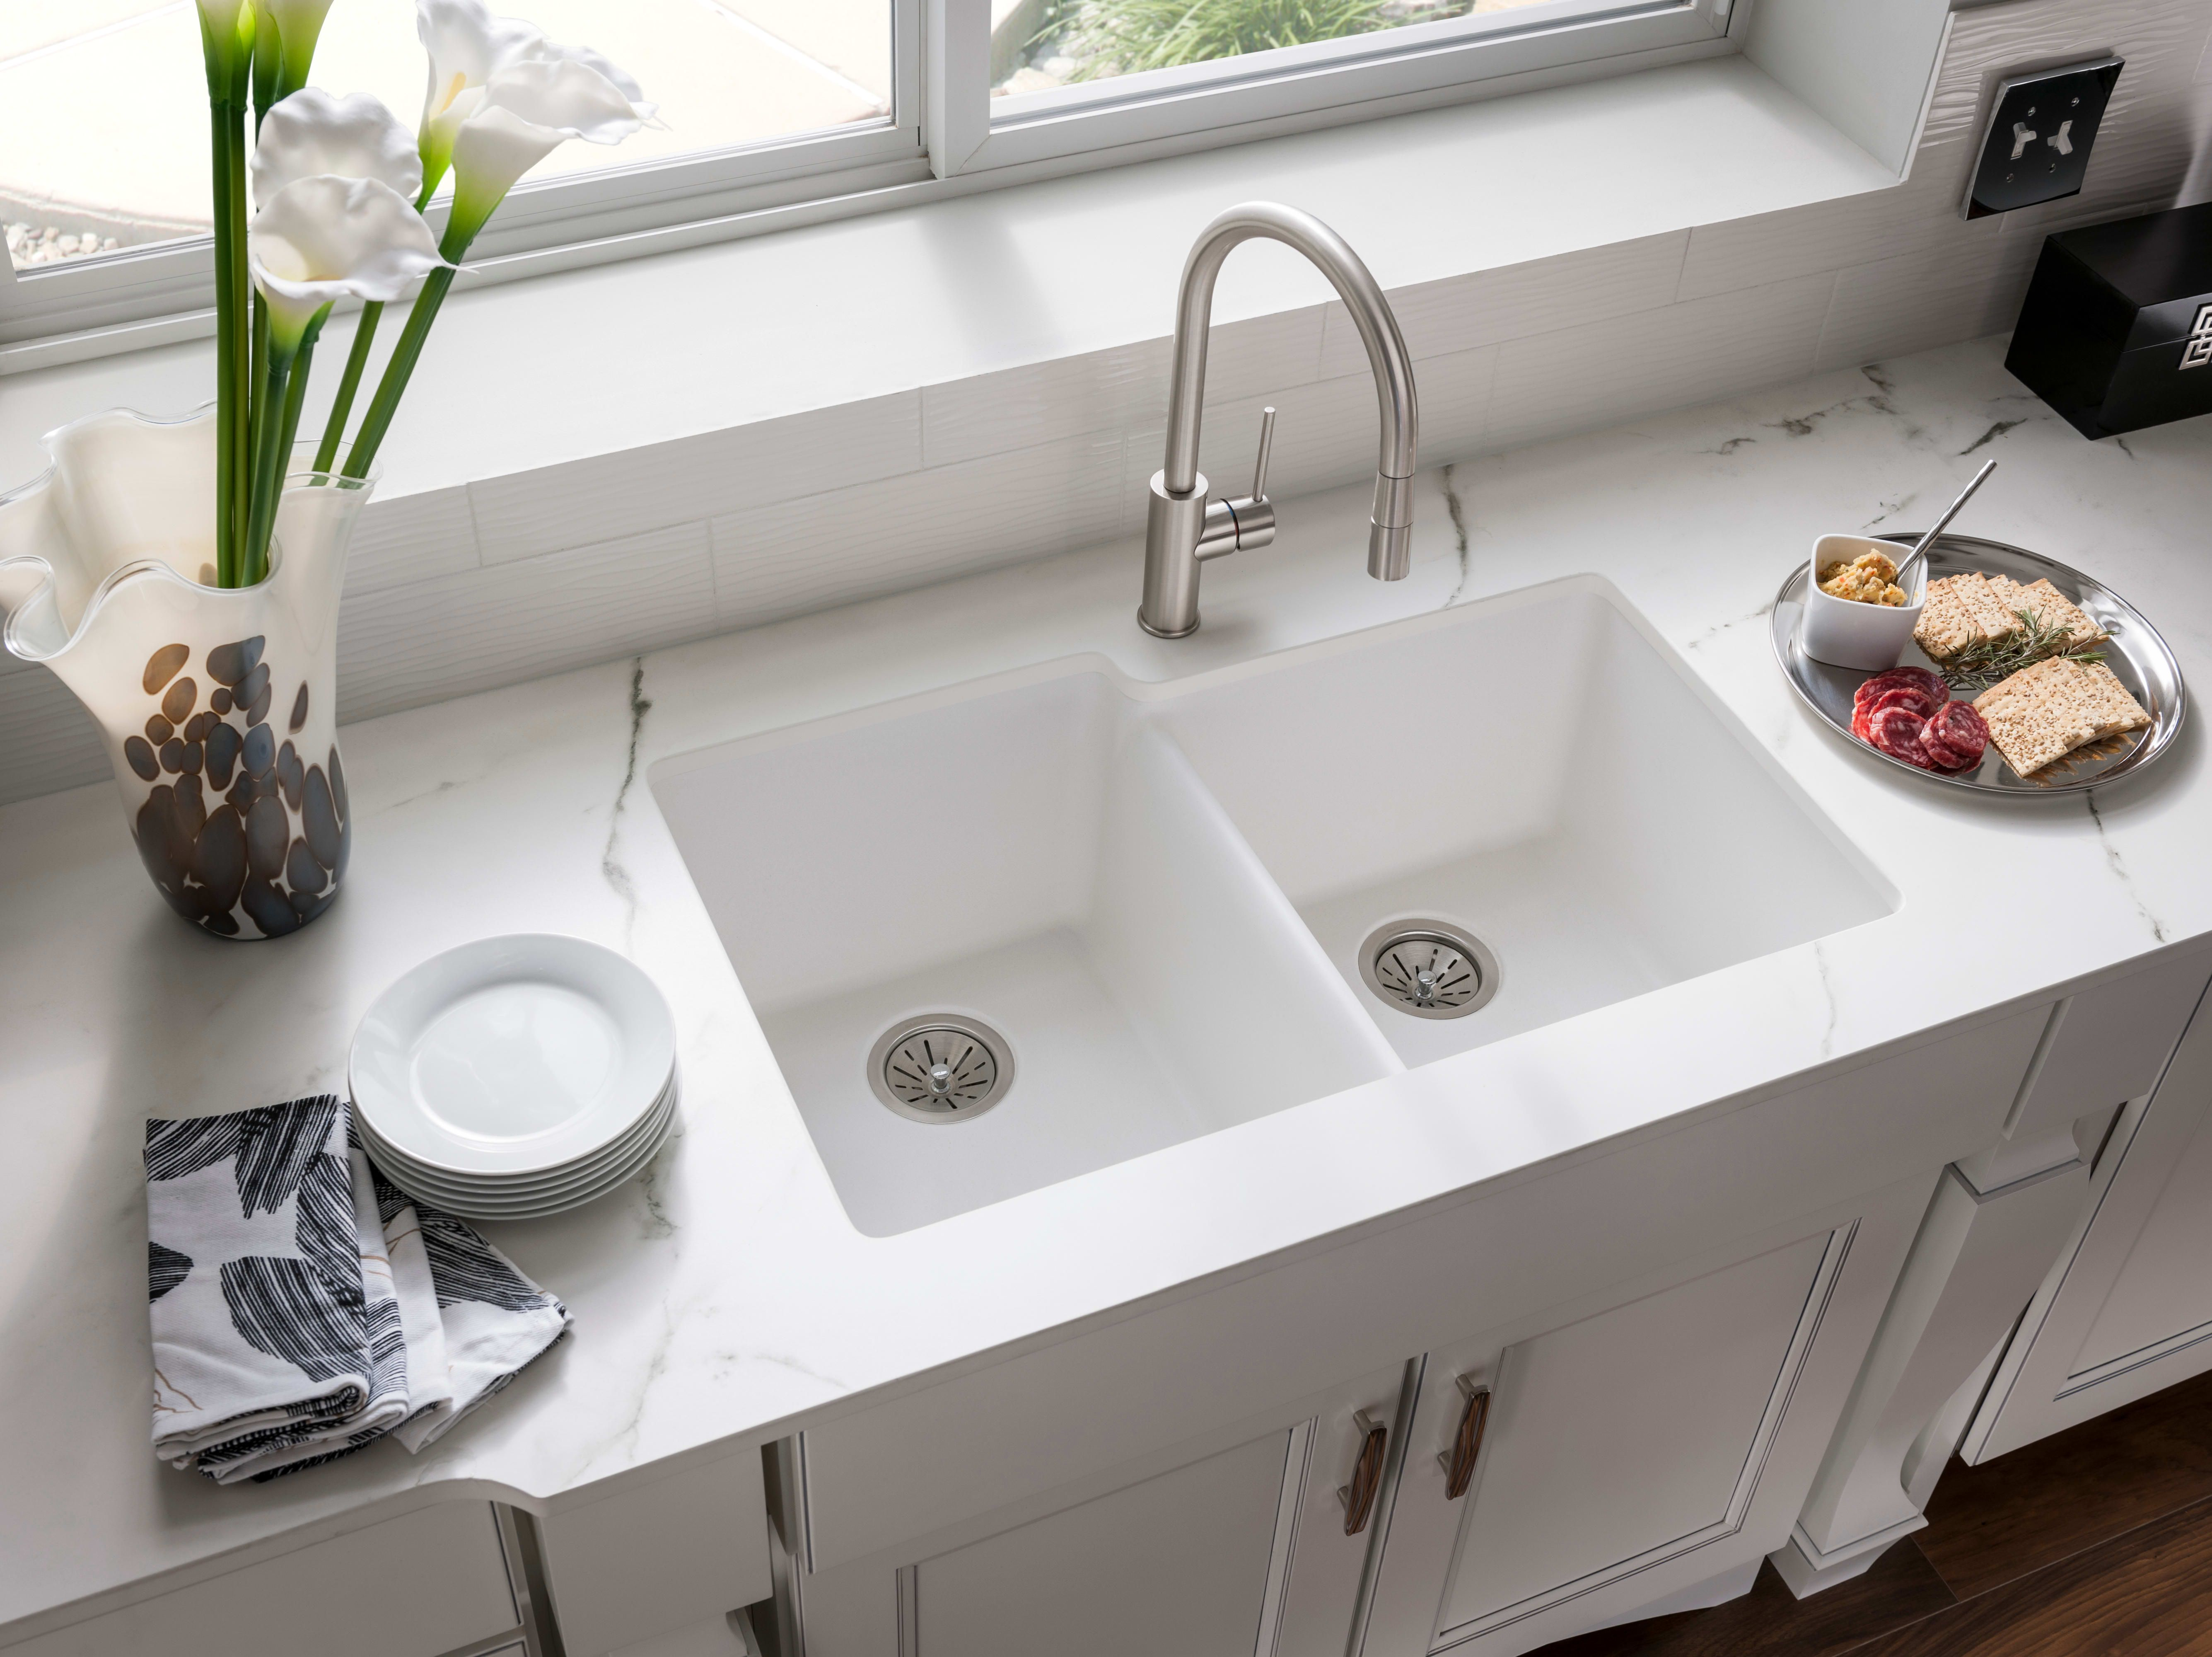 8 Types Of Sinks For Your Kitchen With Images Undermount